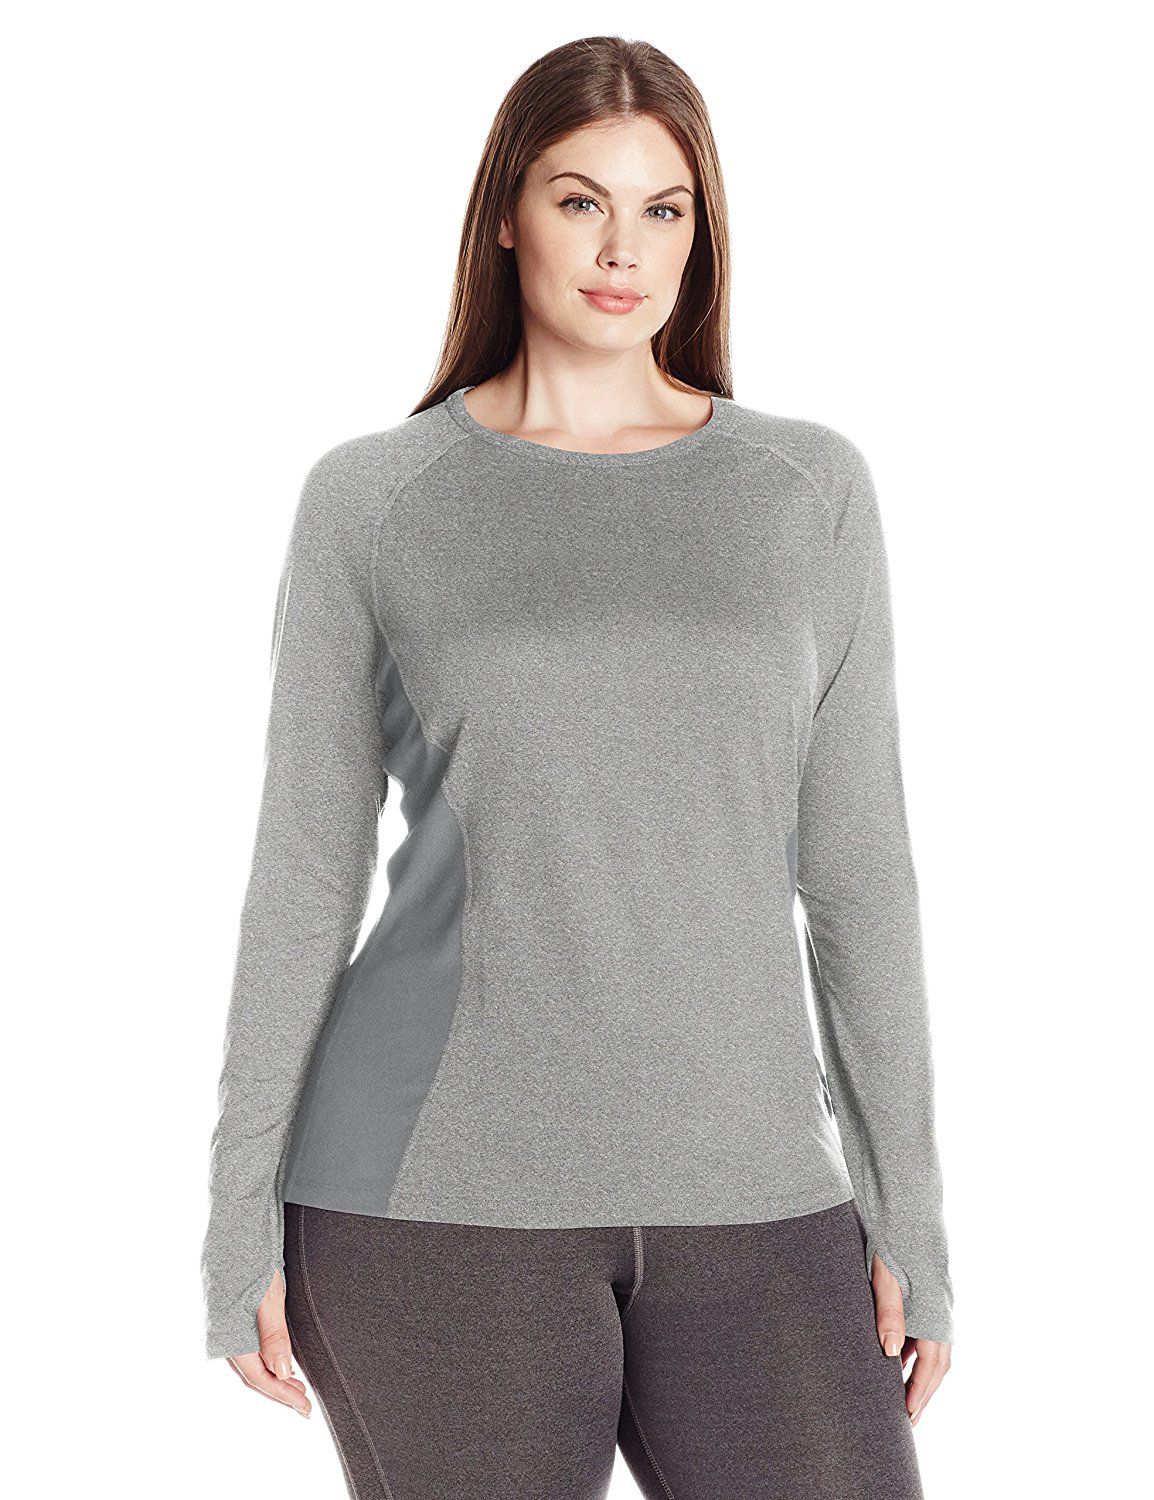 Fruit of the Loom Womens Plus Size Fit for Me Core Performance Thermal Top